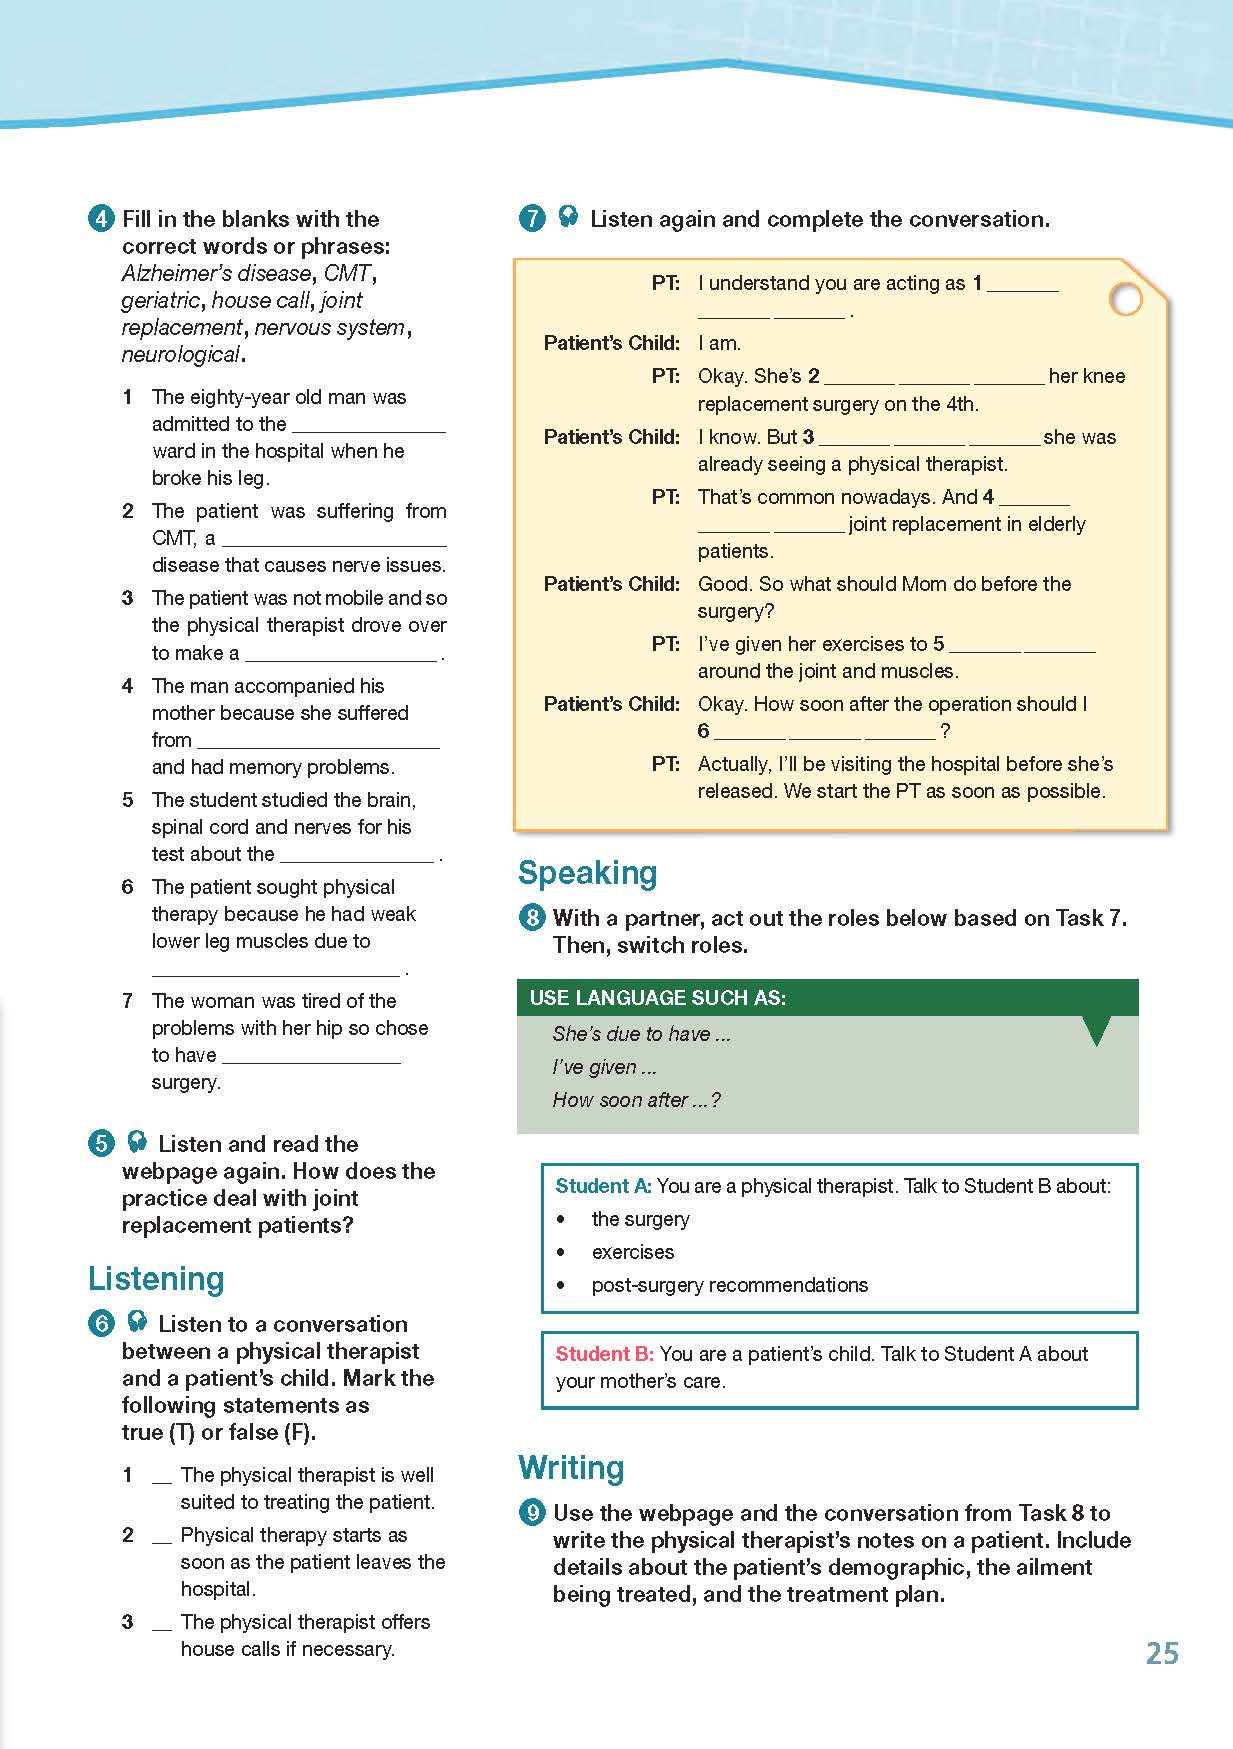 ESP English for Specific Purposes - Career Paths: Physiotherapy - Sample Page 4